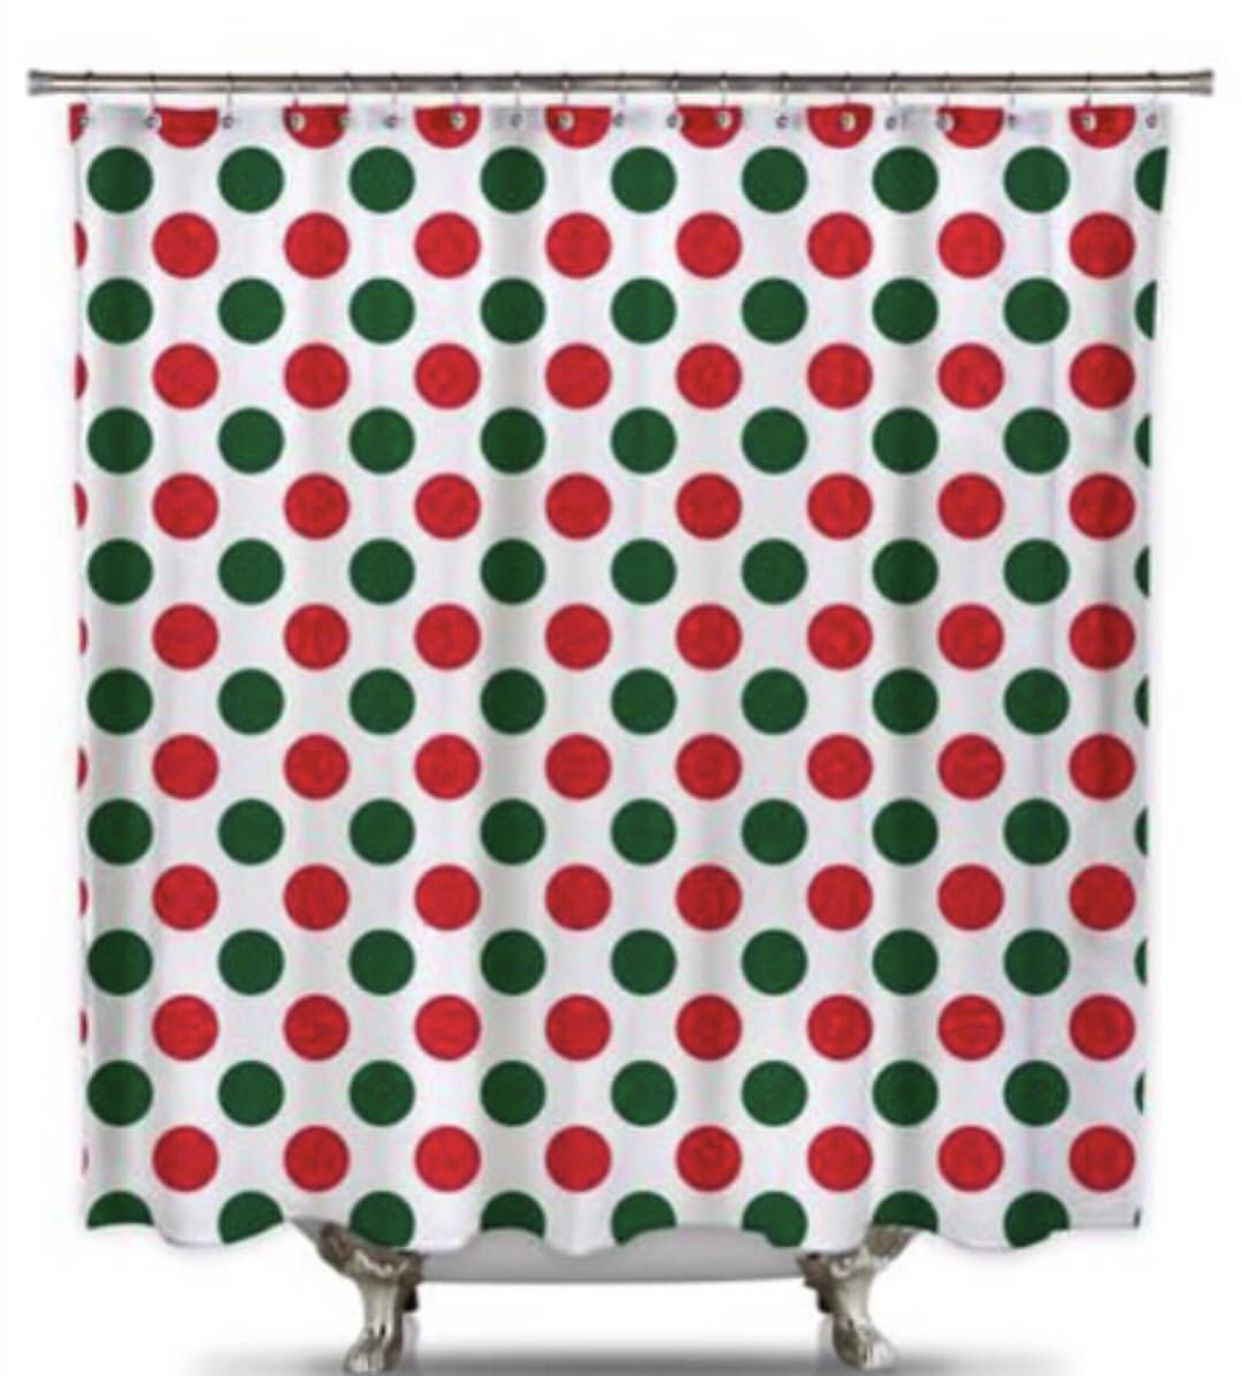 Red and Green Polk-A-Dot Fabric Shower Curtain | Christmas shower ...